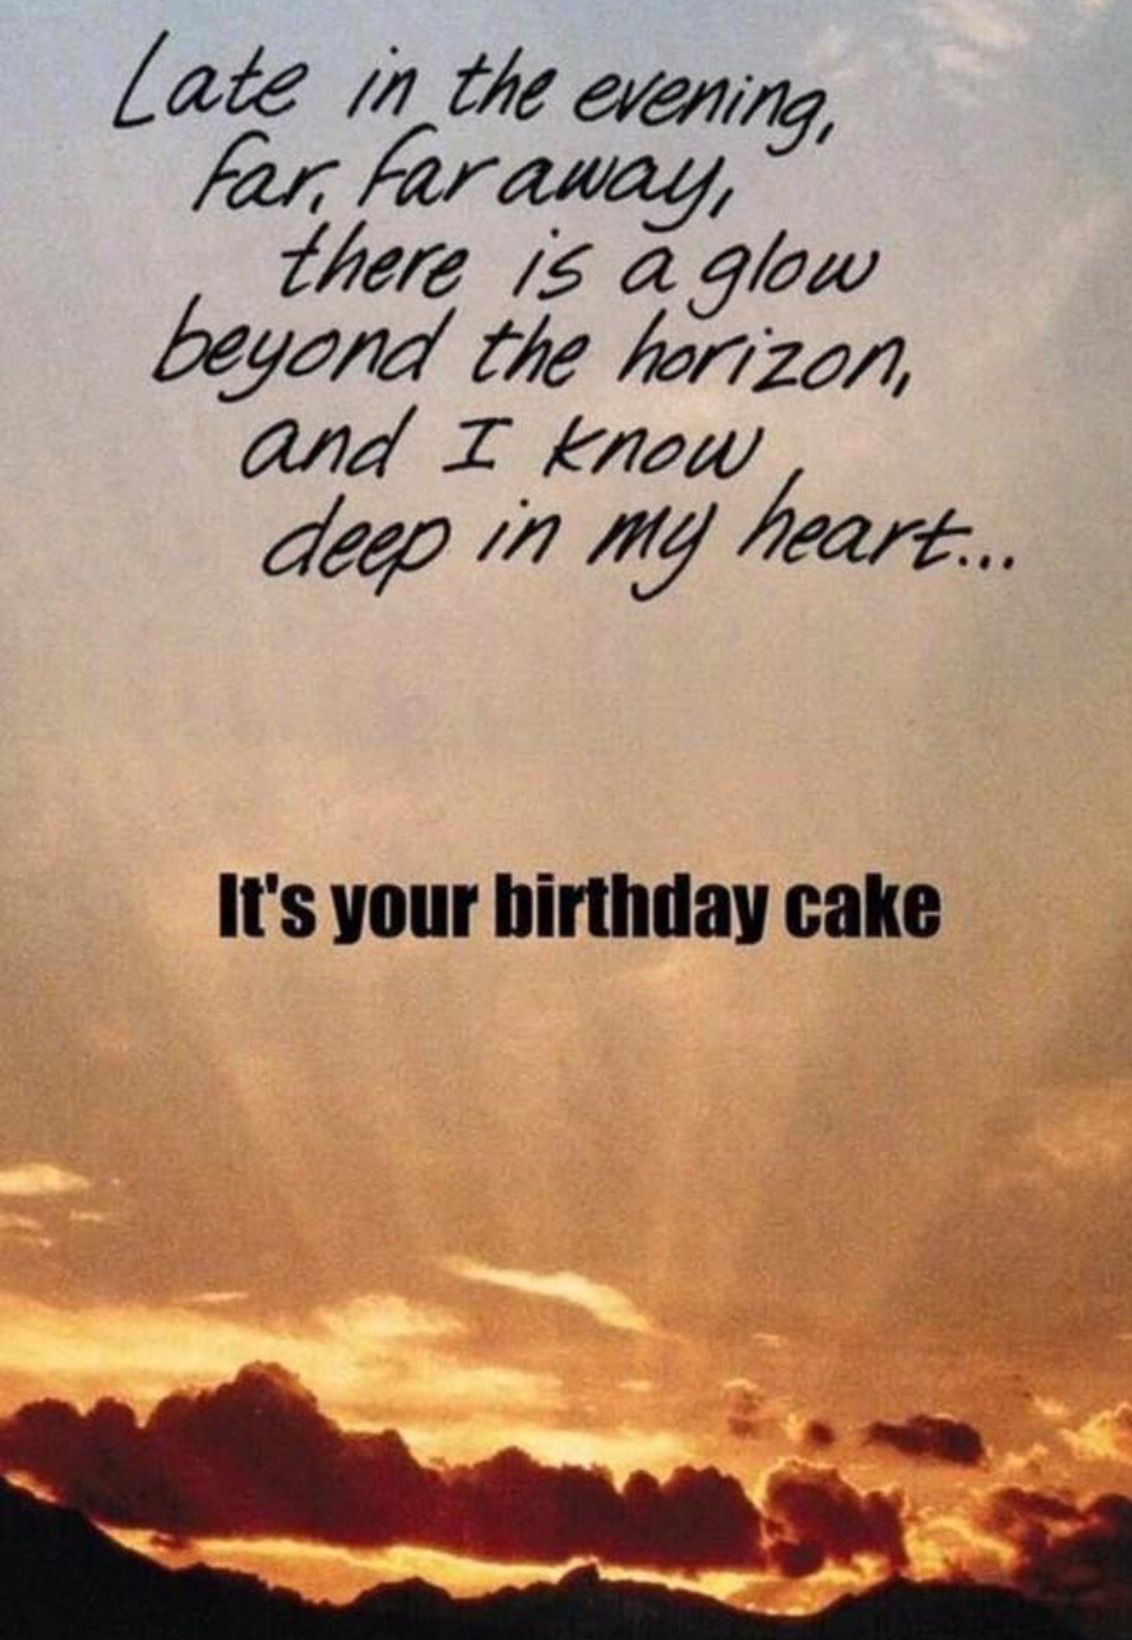 Pin by Kathy Pollock on IT'S YOUR BIRTHDAY | Birthday ...